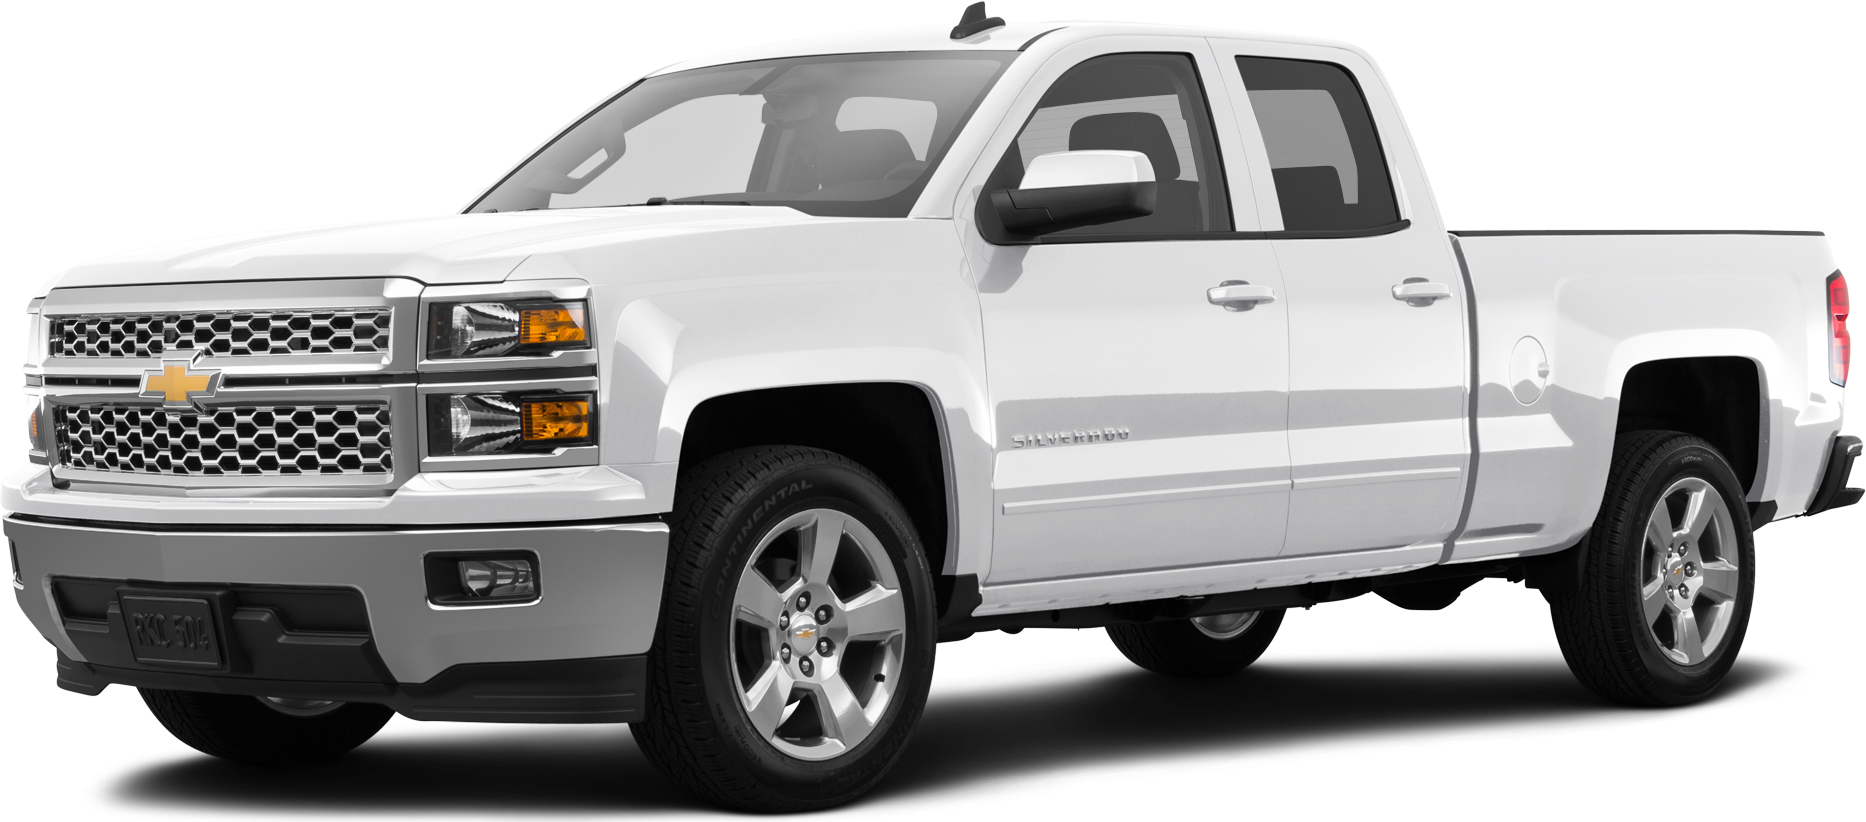 2015 Chevrolet Silverado 3500 HD Crew Cab | Pricing, Ratings